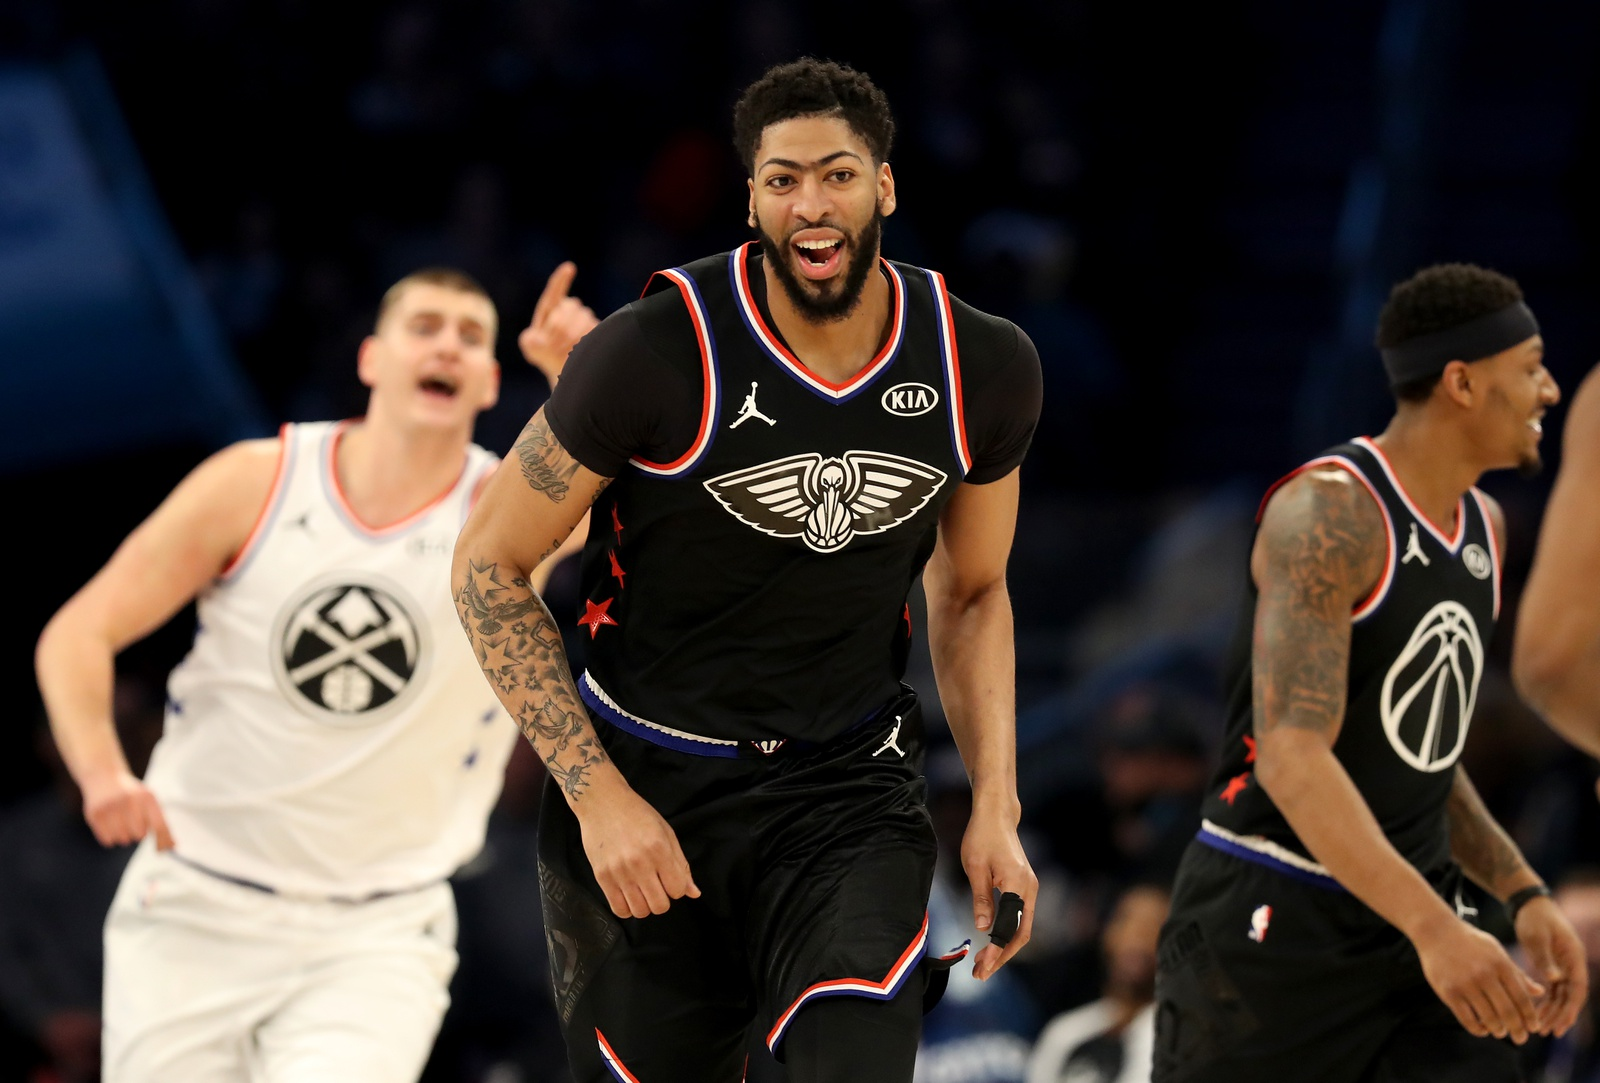 Anthony Davis #23 of the New Orleans Pelicans and Team LeBron reacts against Team Giannis in the first quarter during the NBA All-Star game as part of the 2019 NBA All-Star Weekend at Spectrum Center on February 17, 2019 in Charlotte, North Carolina.